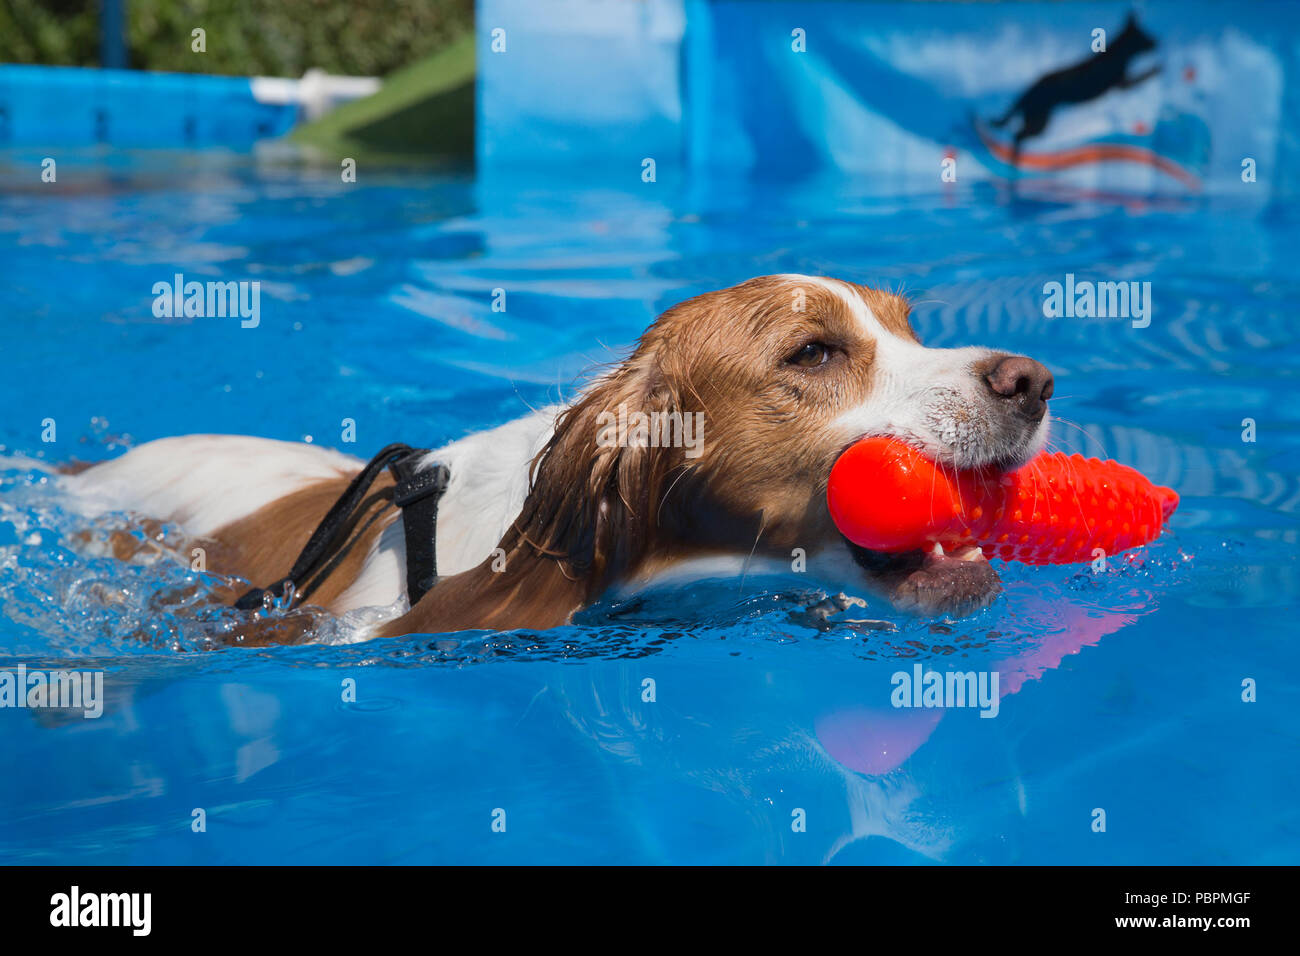 Calgary, Canada. 28th July, 2018.  Dog retrieves a toy during a dog jumping event. Canine watersports are part of Pet-a-Palooza, an outdoor pet festival. Rosanne Tackaberry/Alamy Live News - Stock Image